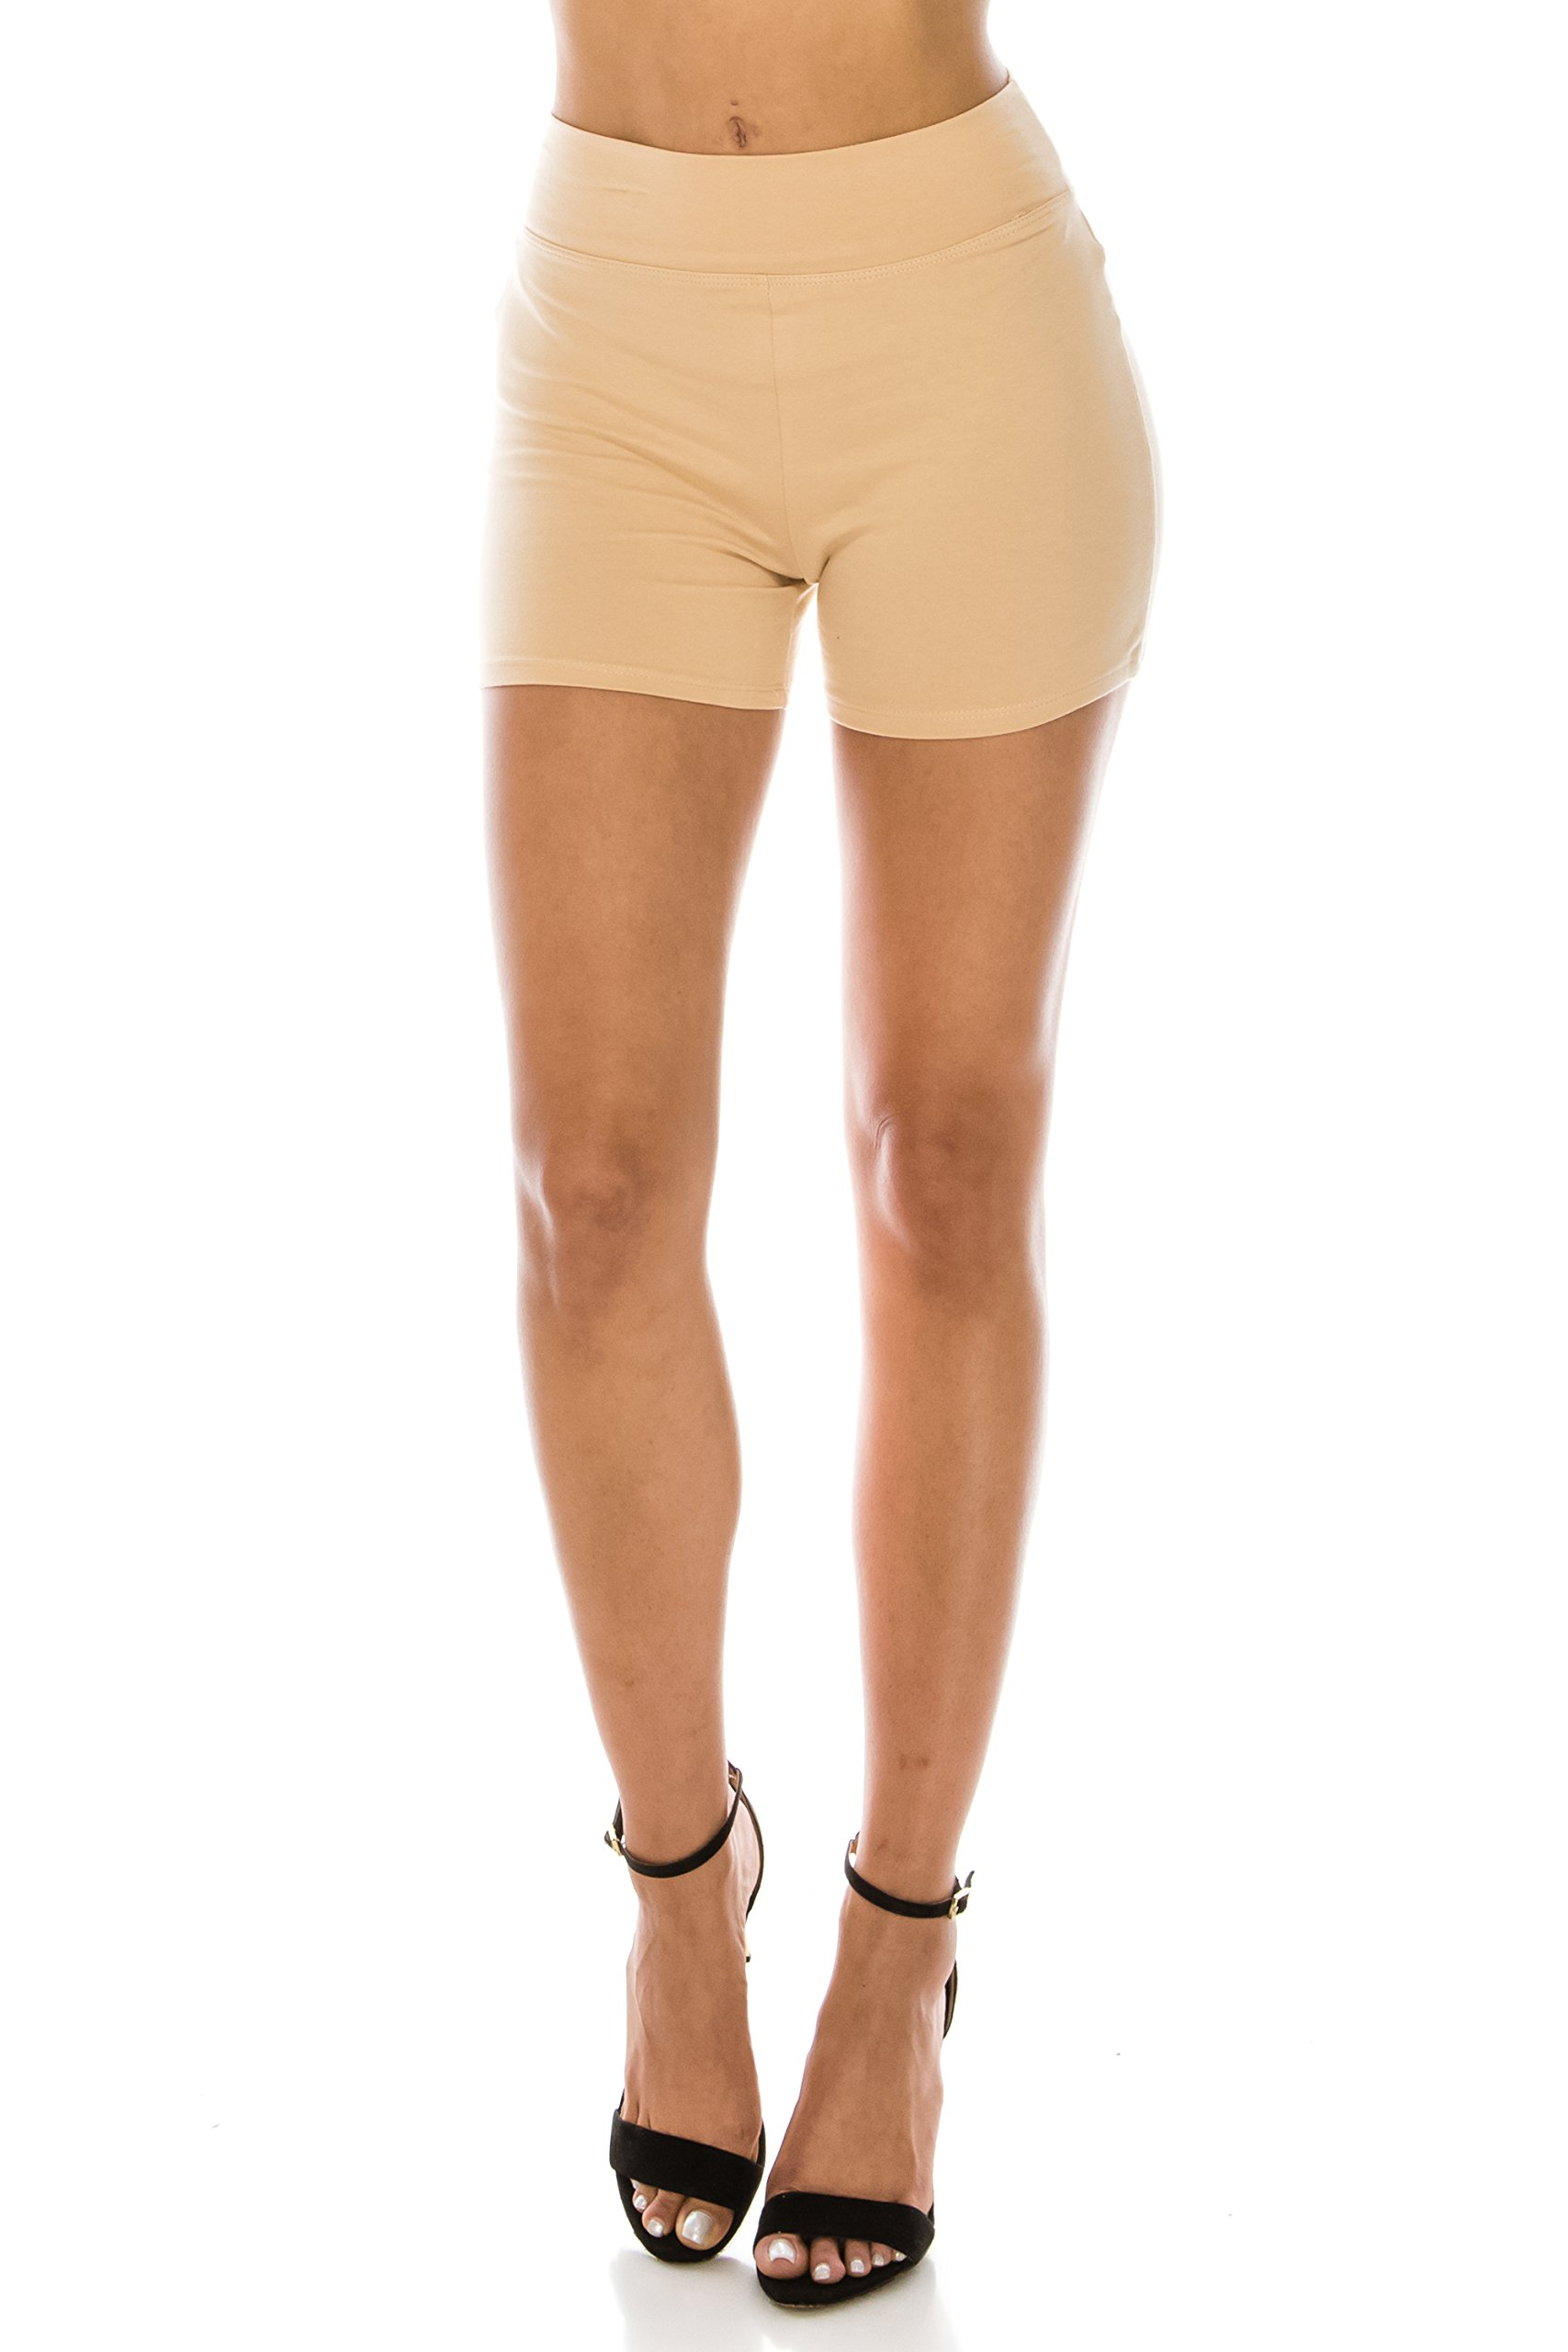 The Classic Women's Stretch Cotton Activewear Dance Yoga Booty Shorts Pants S to 3XL (Large, Nude_High) by The Classic (Image #3)